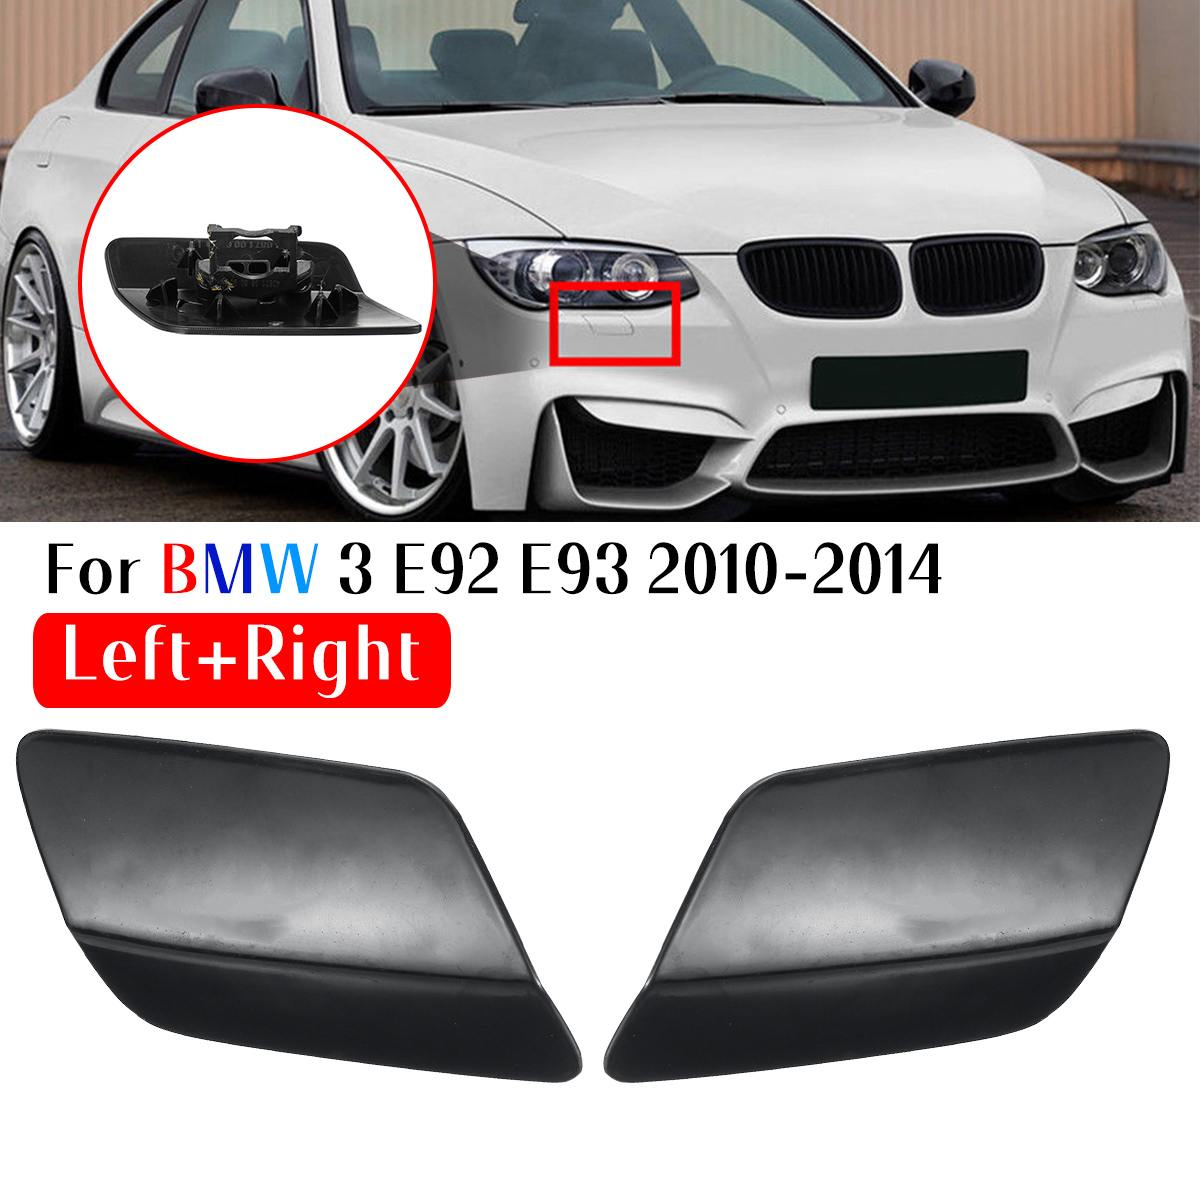 Pair L+R Front Bumper Headlight Washer Cover Cap For BMW E92 Coupe E93 328i 335i